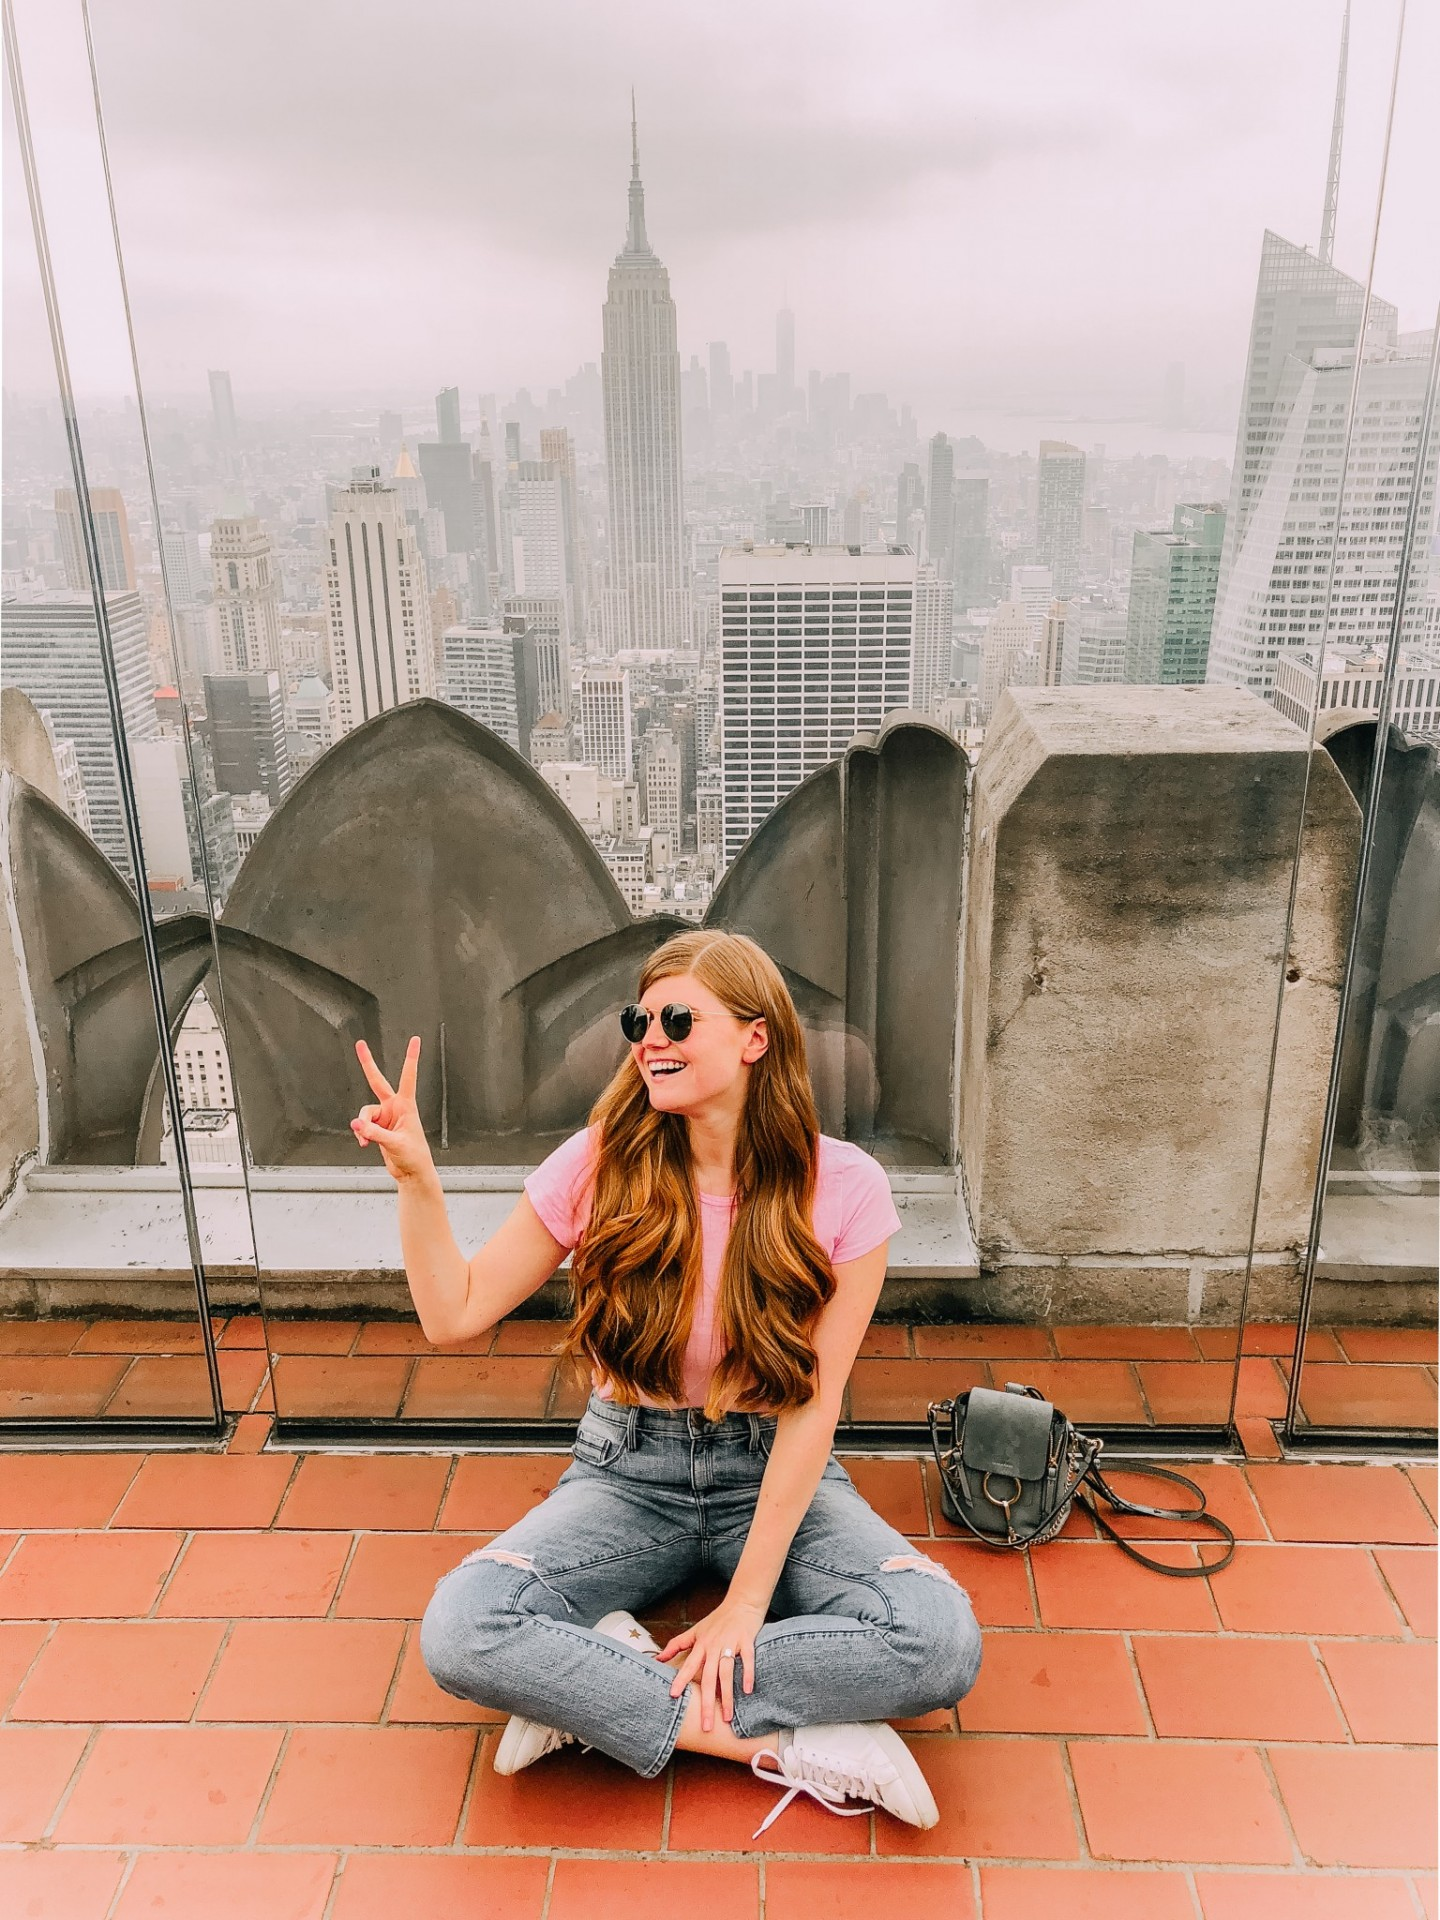 Popular London Lifestyle blogger Mollie Moore shares what she miss the most about America in her American Expat series |  | Top London and US life and style blogger, Mollie Moore shares her 2018 year in review: American expat thoughts